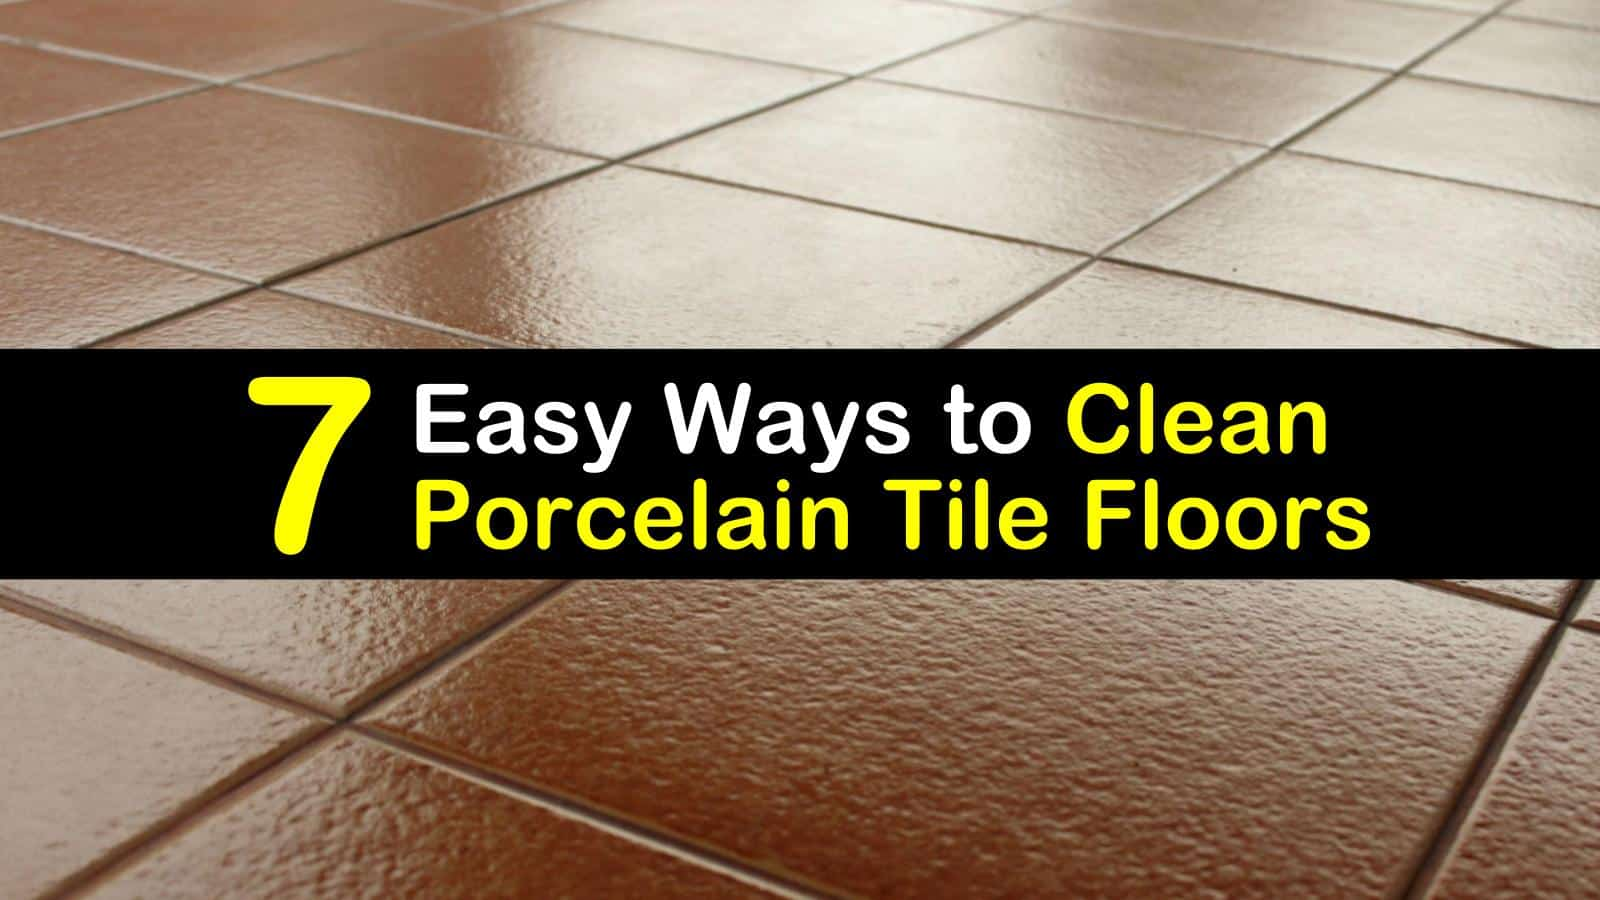 7 Easy Ways To Clean Porcelain Tile Floors